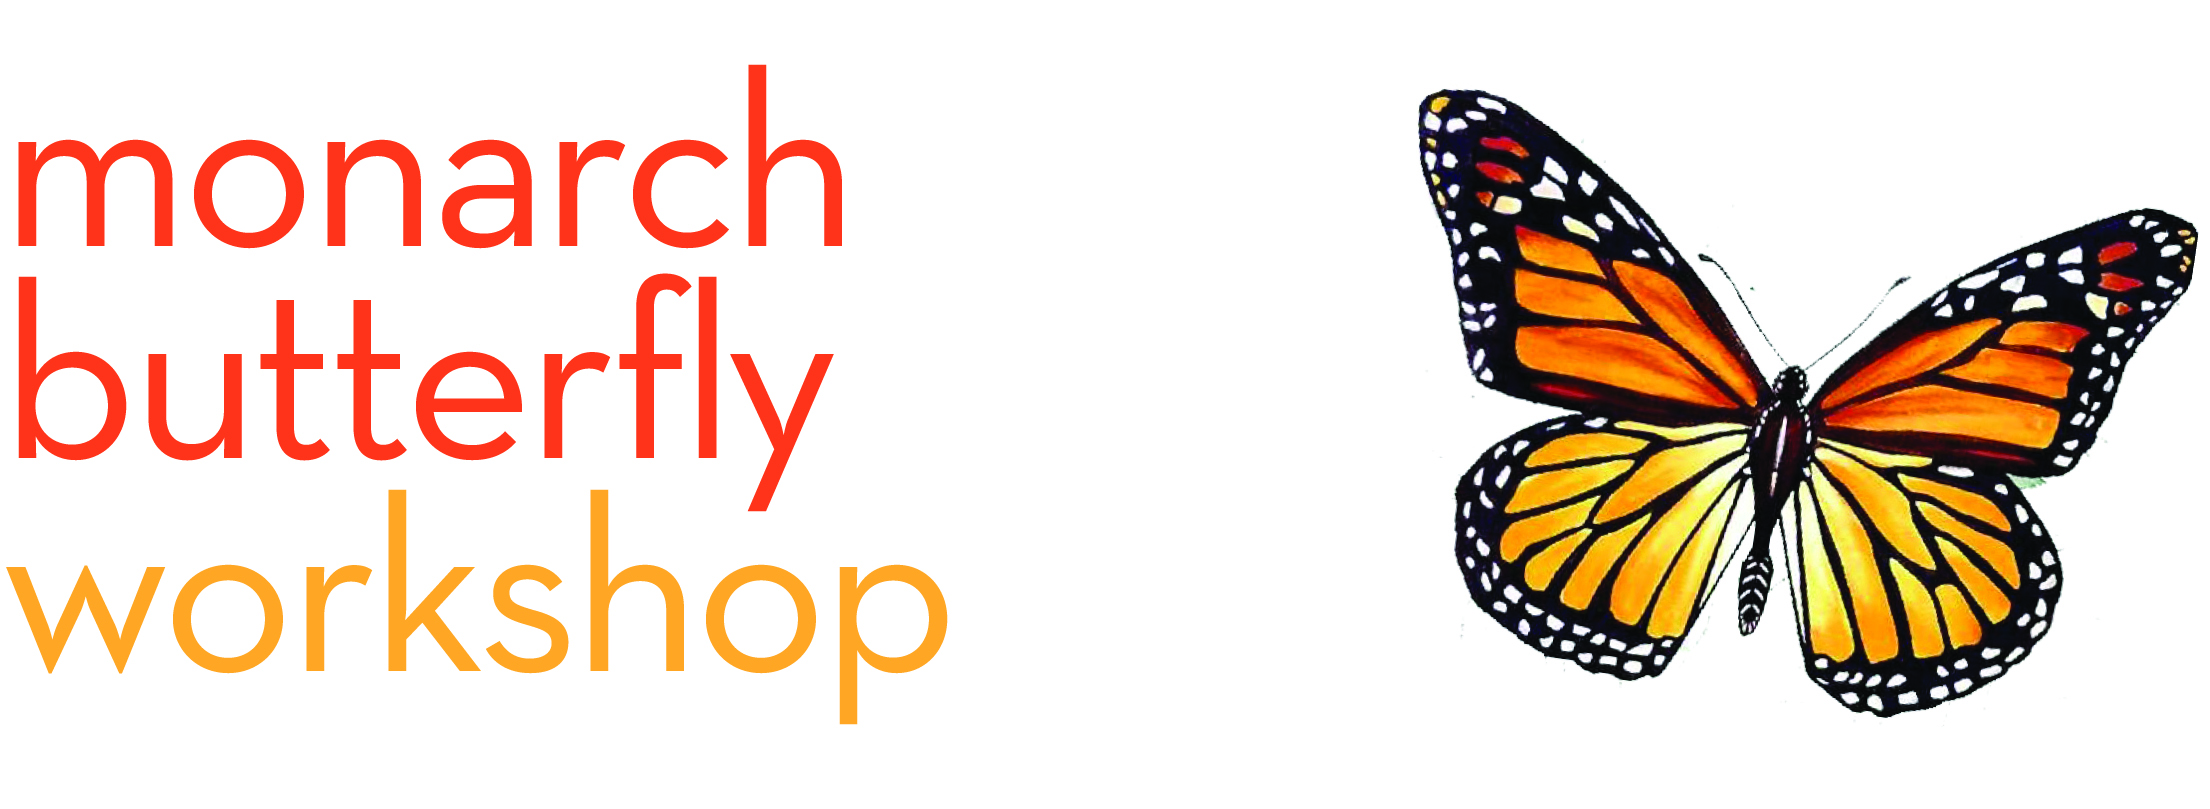 Tickets for Monarch Butterfly Workshop in Monkton from ShowClix